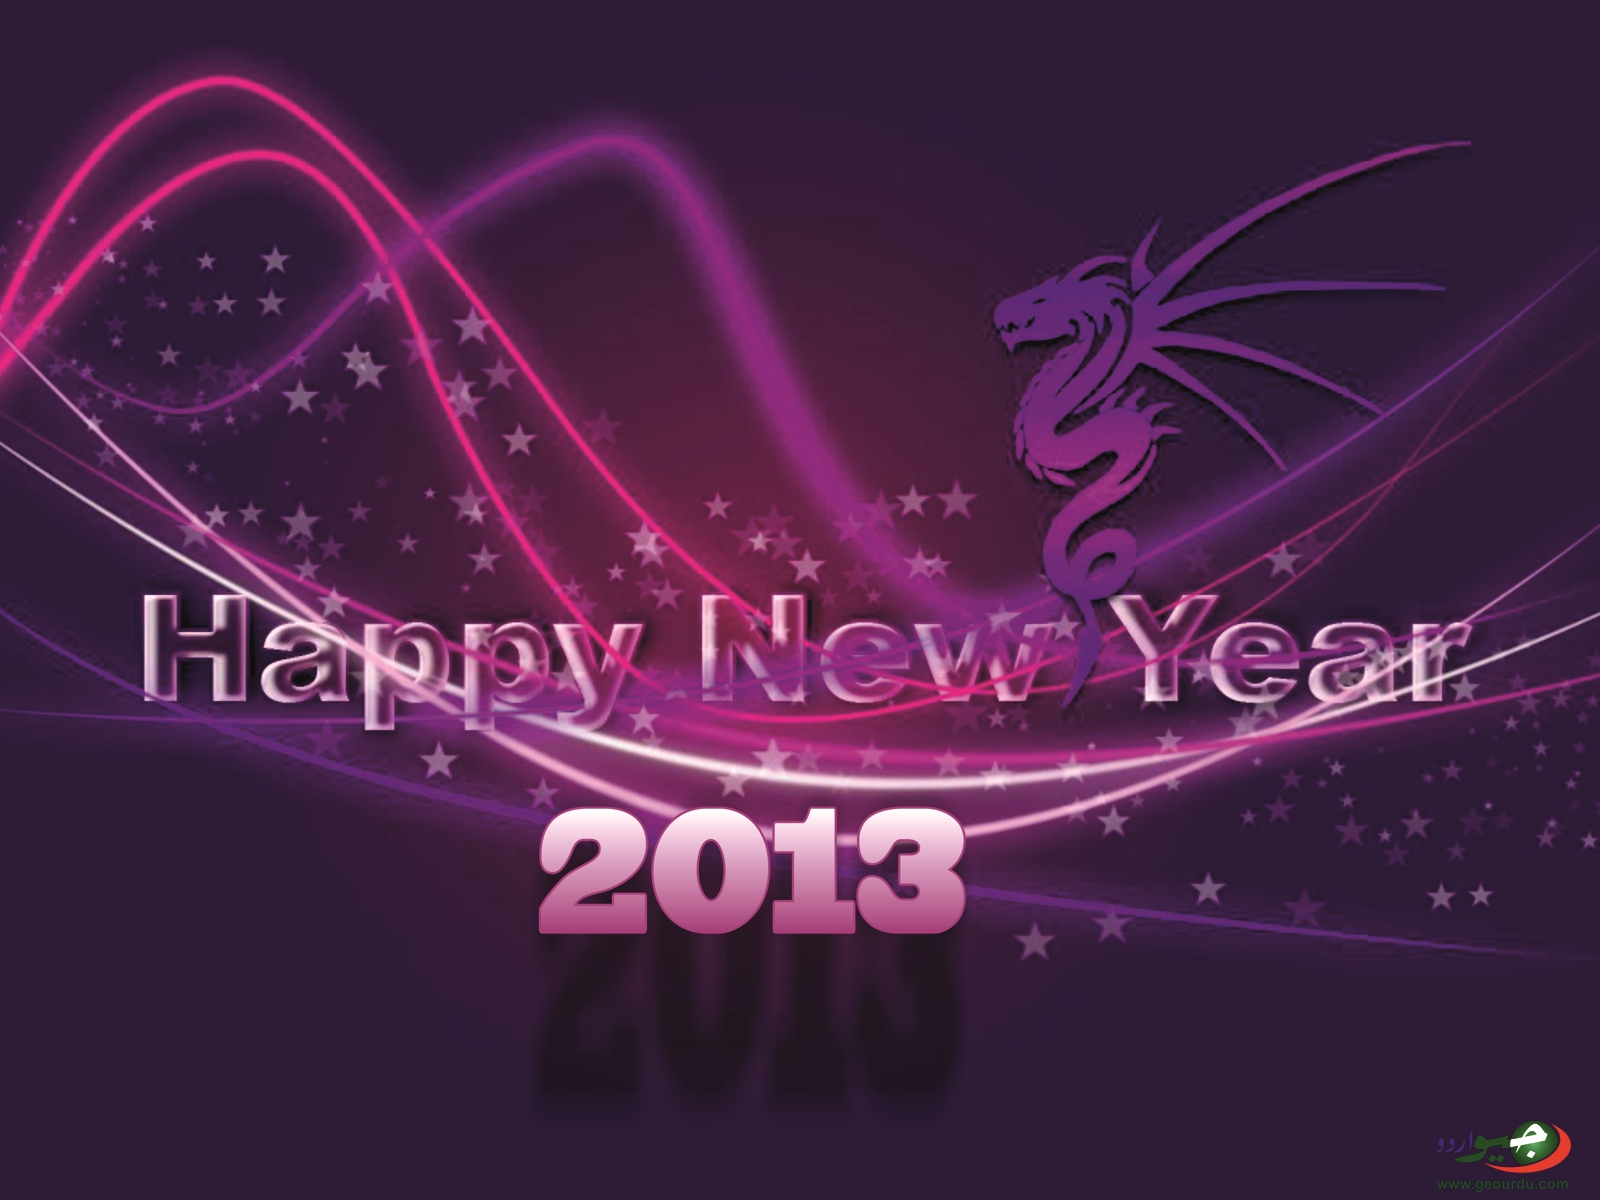 happy new year 2013 happy new year 2013 wallpapers wallpapers . 1600 x 1200.Happy New Year Foto